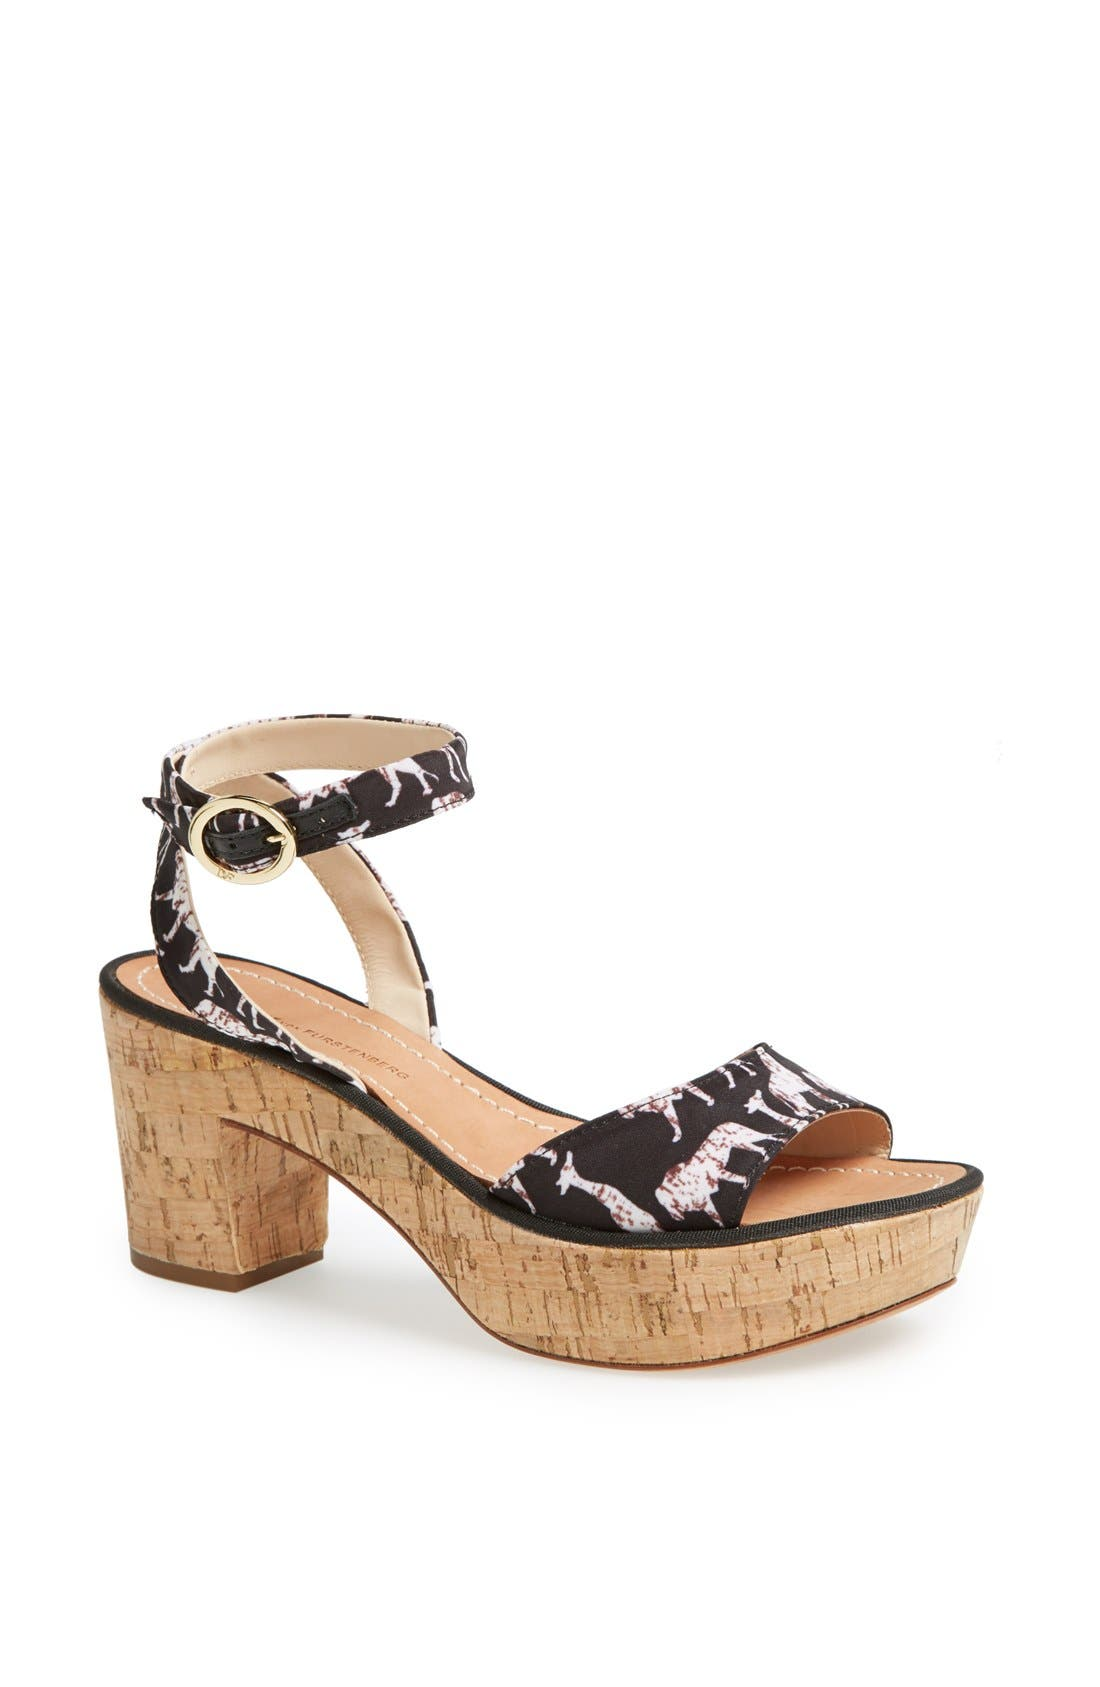 Alternate Image 1 Selected - Diane von Furstenberg 'Odelia' Sandal